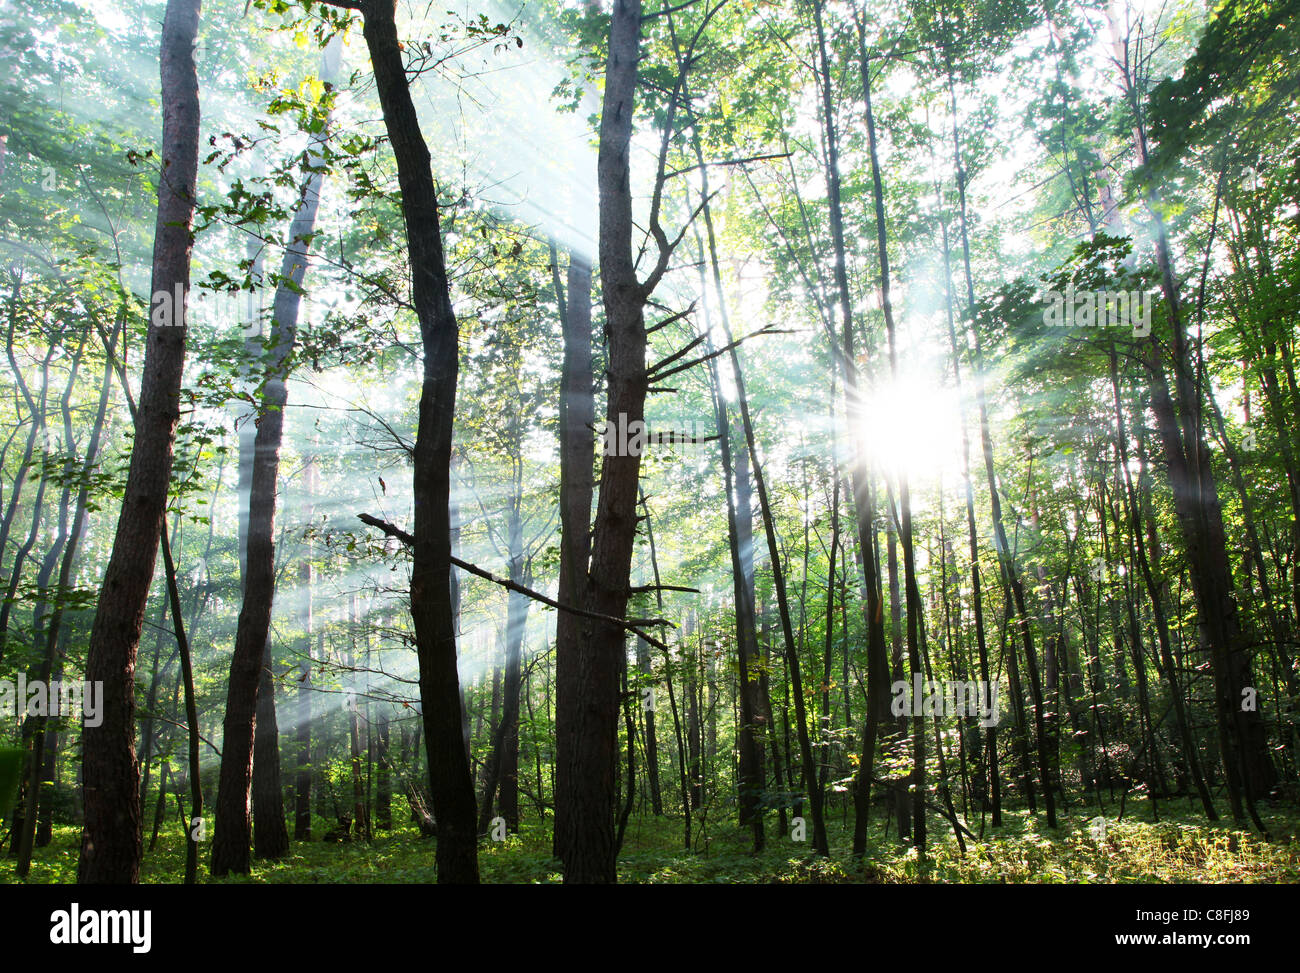 Sun's rays shining through the trees in the forest. Stock Photo